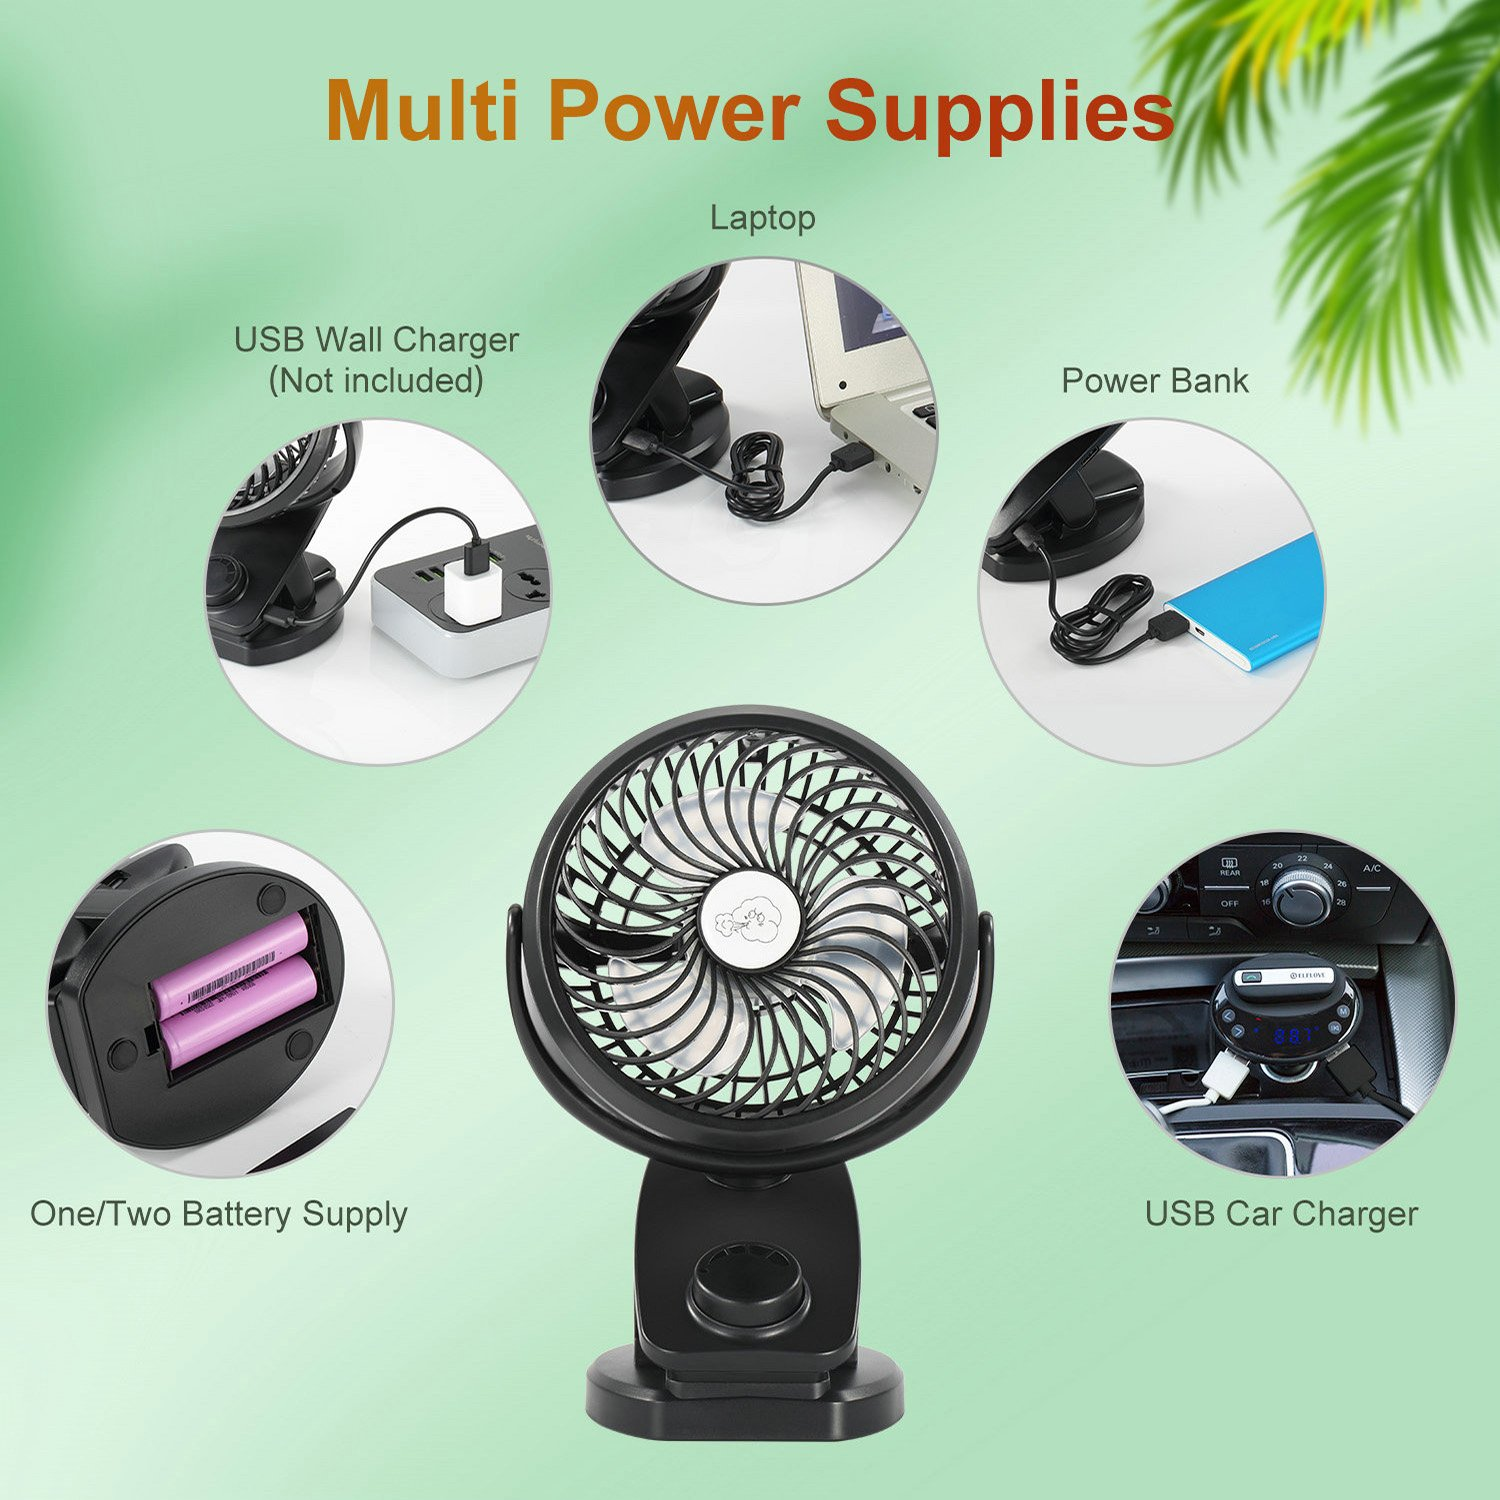 COMLIFE Portable Fan F150, USB Desk Fan with Rechargeable 4400 mAh Battery,Mini Clip on Fan with Powerbank &Aroma Diffuser Function,Stepless Speeds, Ideal for Stroller, Camping, Office, Outdoor,Travel by COMLIFE (Image #4)